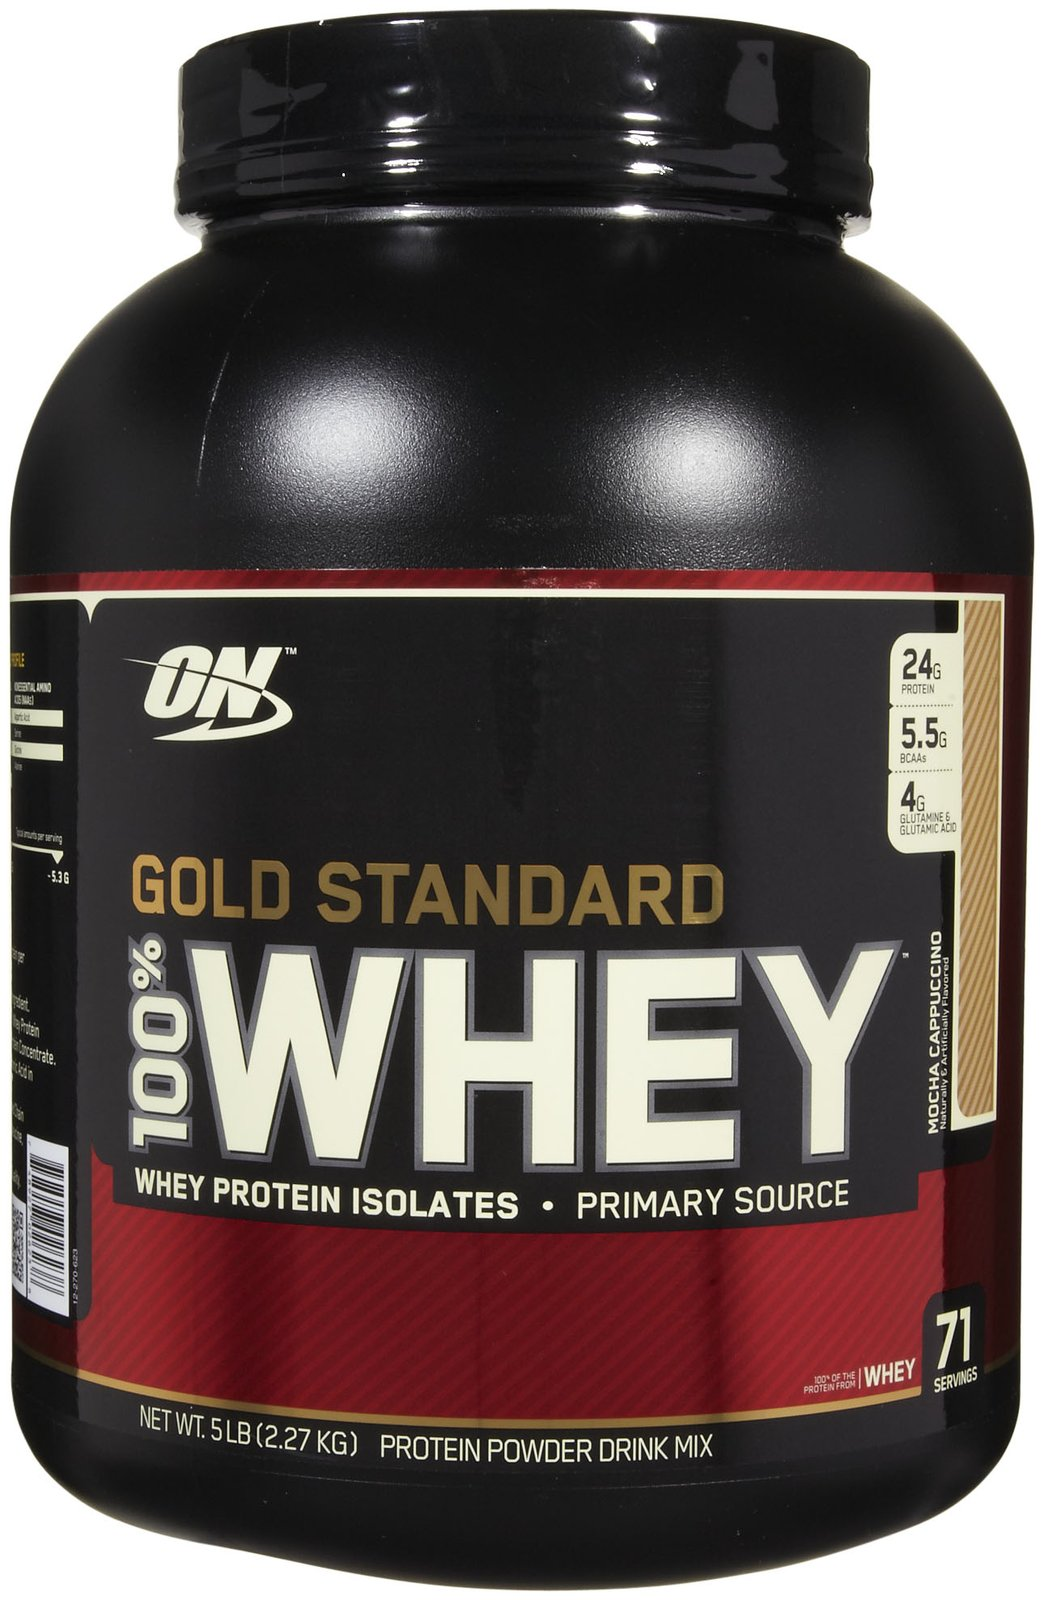 Optimum Nutrition Gold Standard 100 Whey Protein Review Mocha Cappuccino Gains Lifestyle